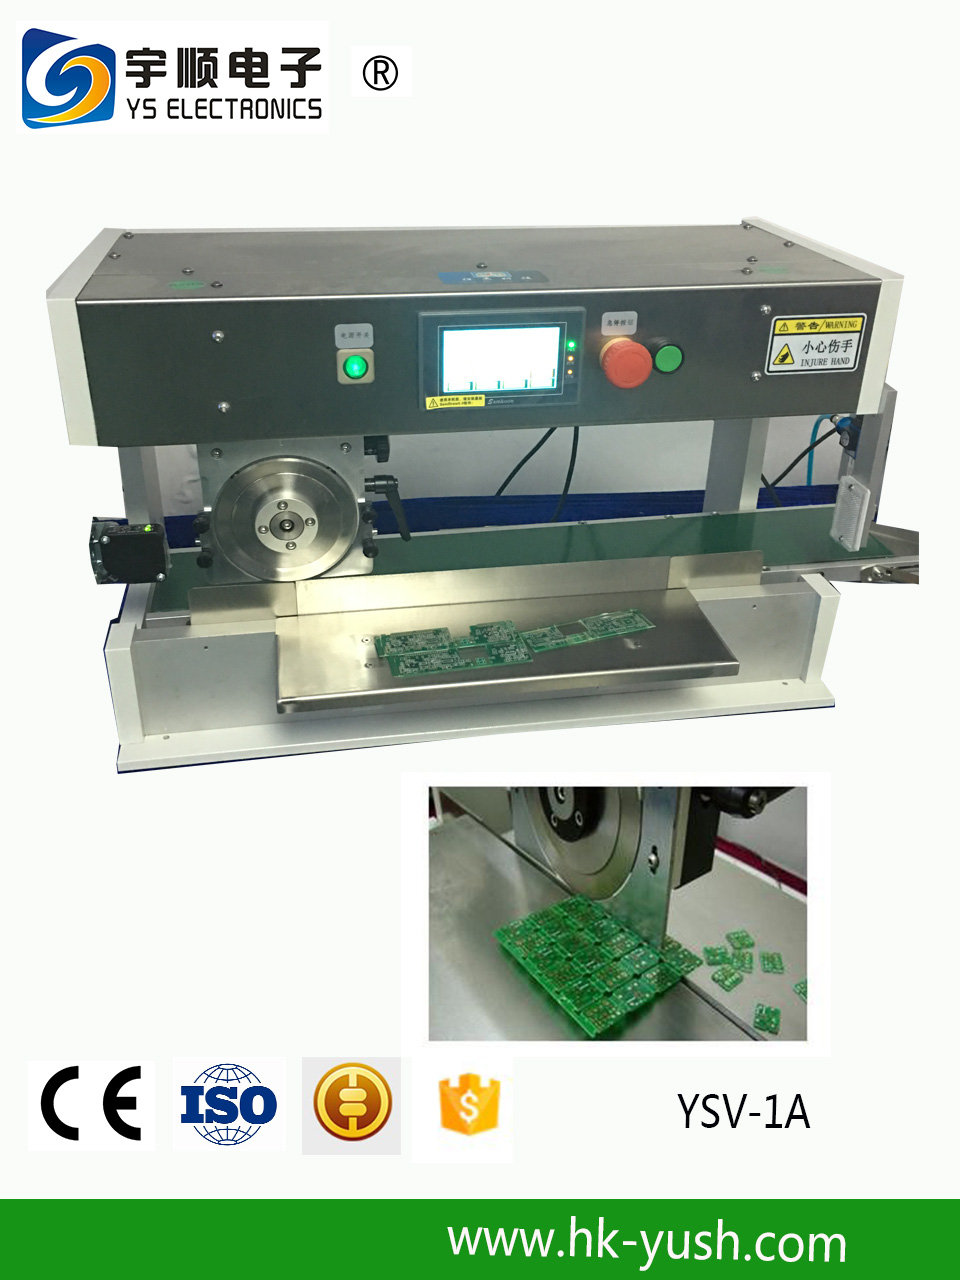 Automatic knife dividing machine